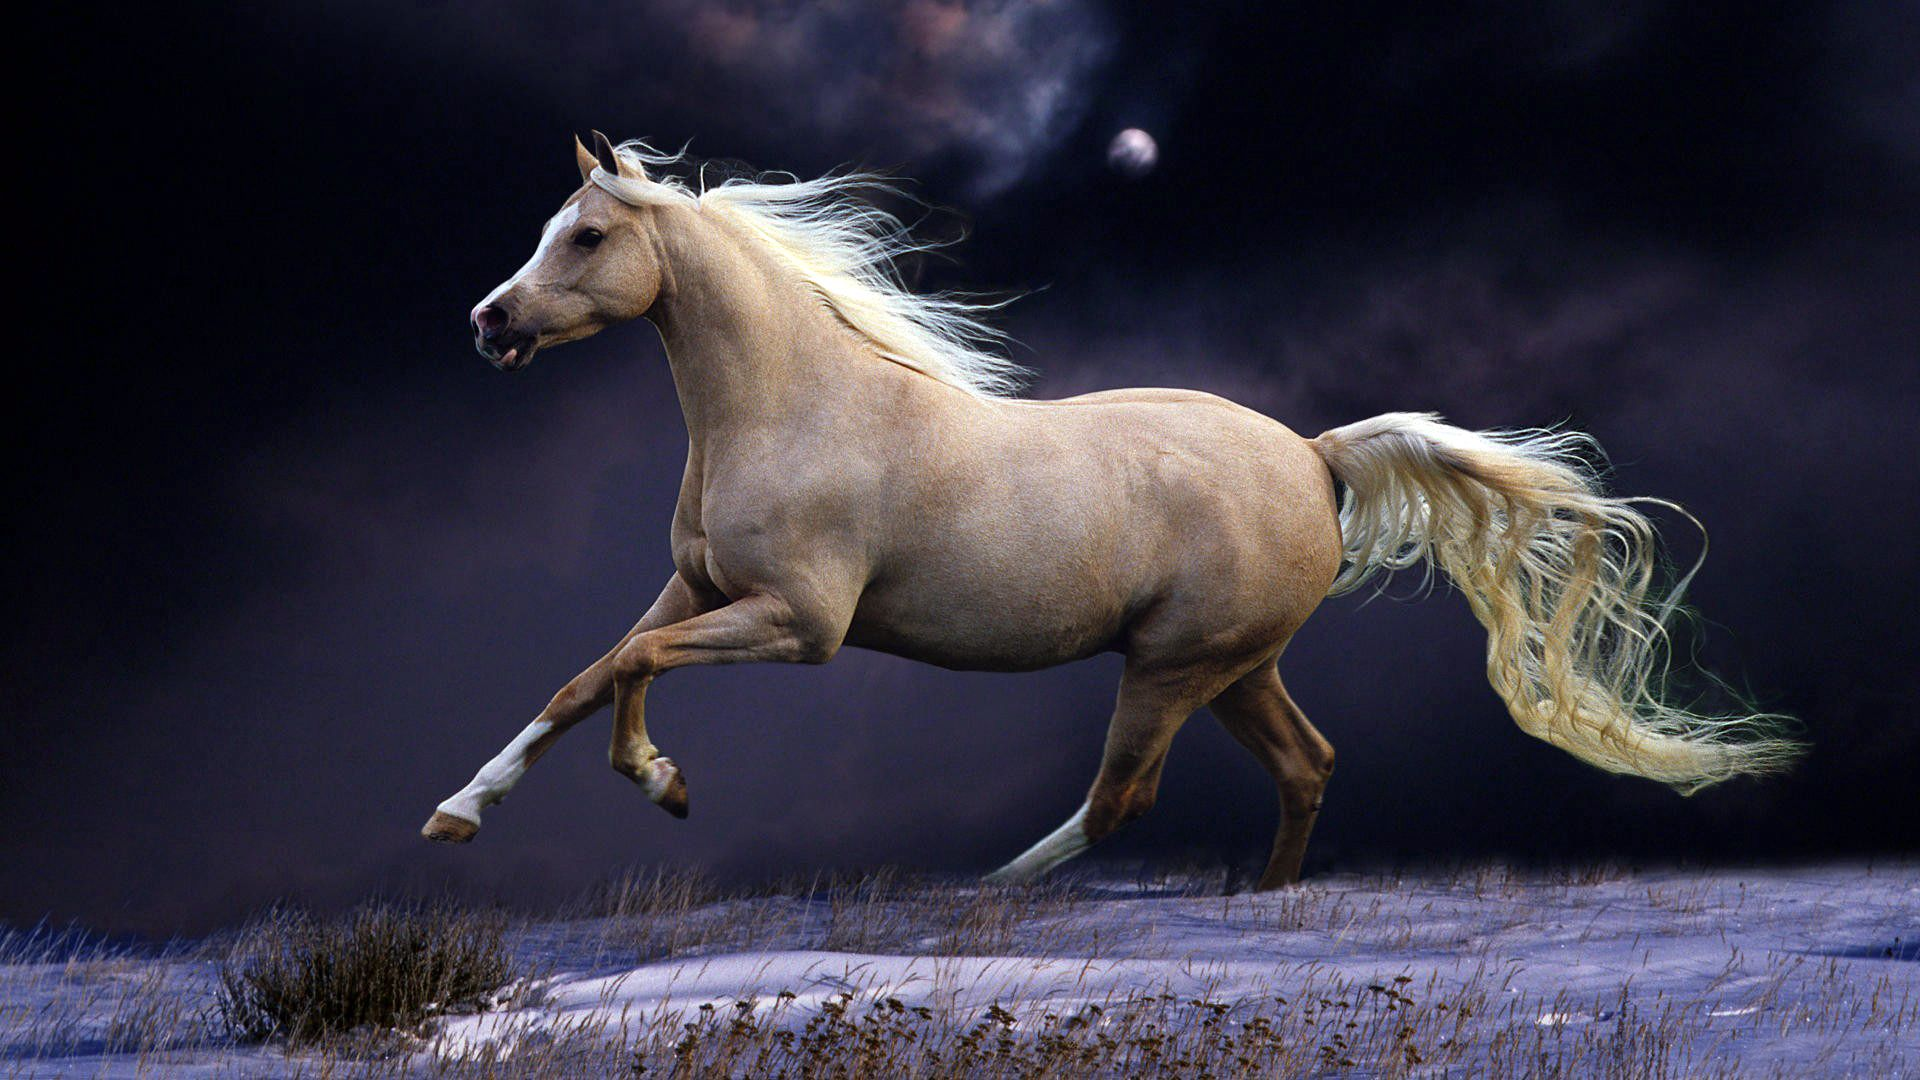 81322 Screensavers and Wallpapers Beautiful for phone. Download Animals, Sky, Night, Beautiful, Mane, Horse, Run, Running pictures for free